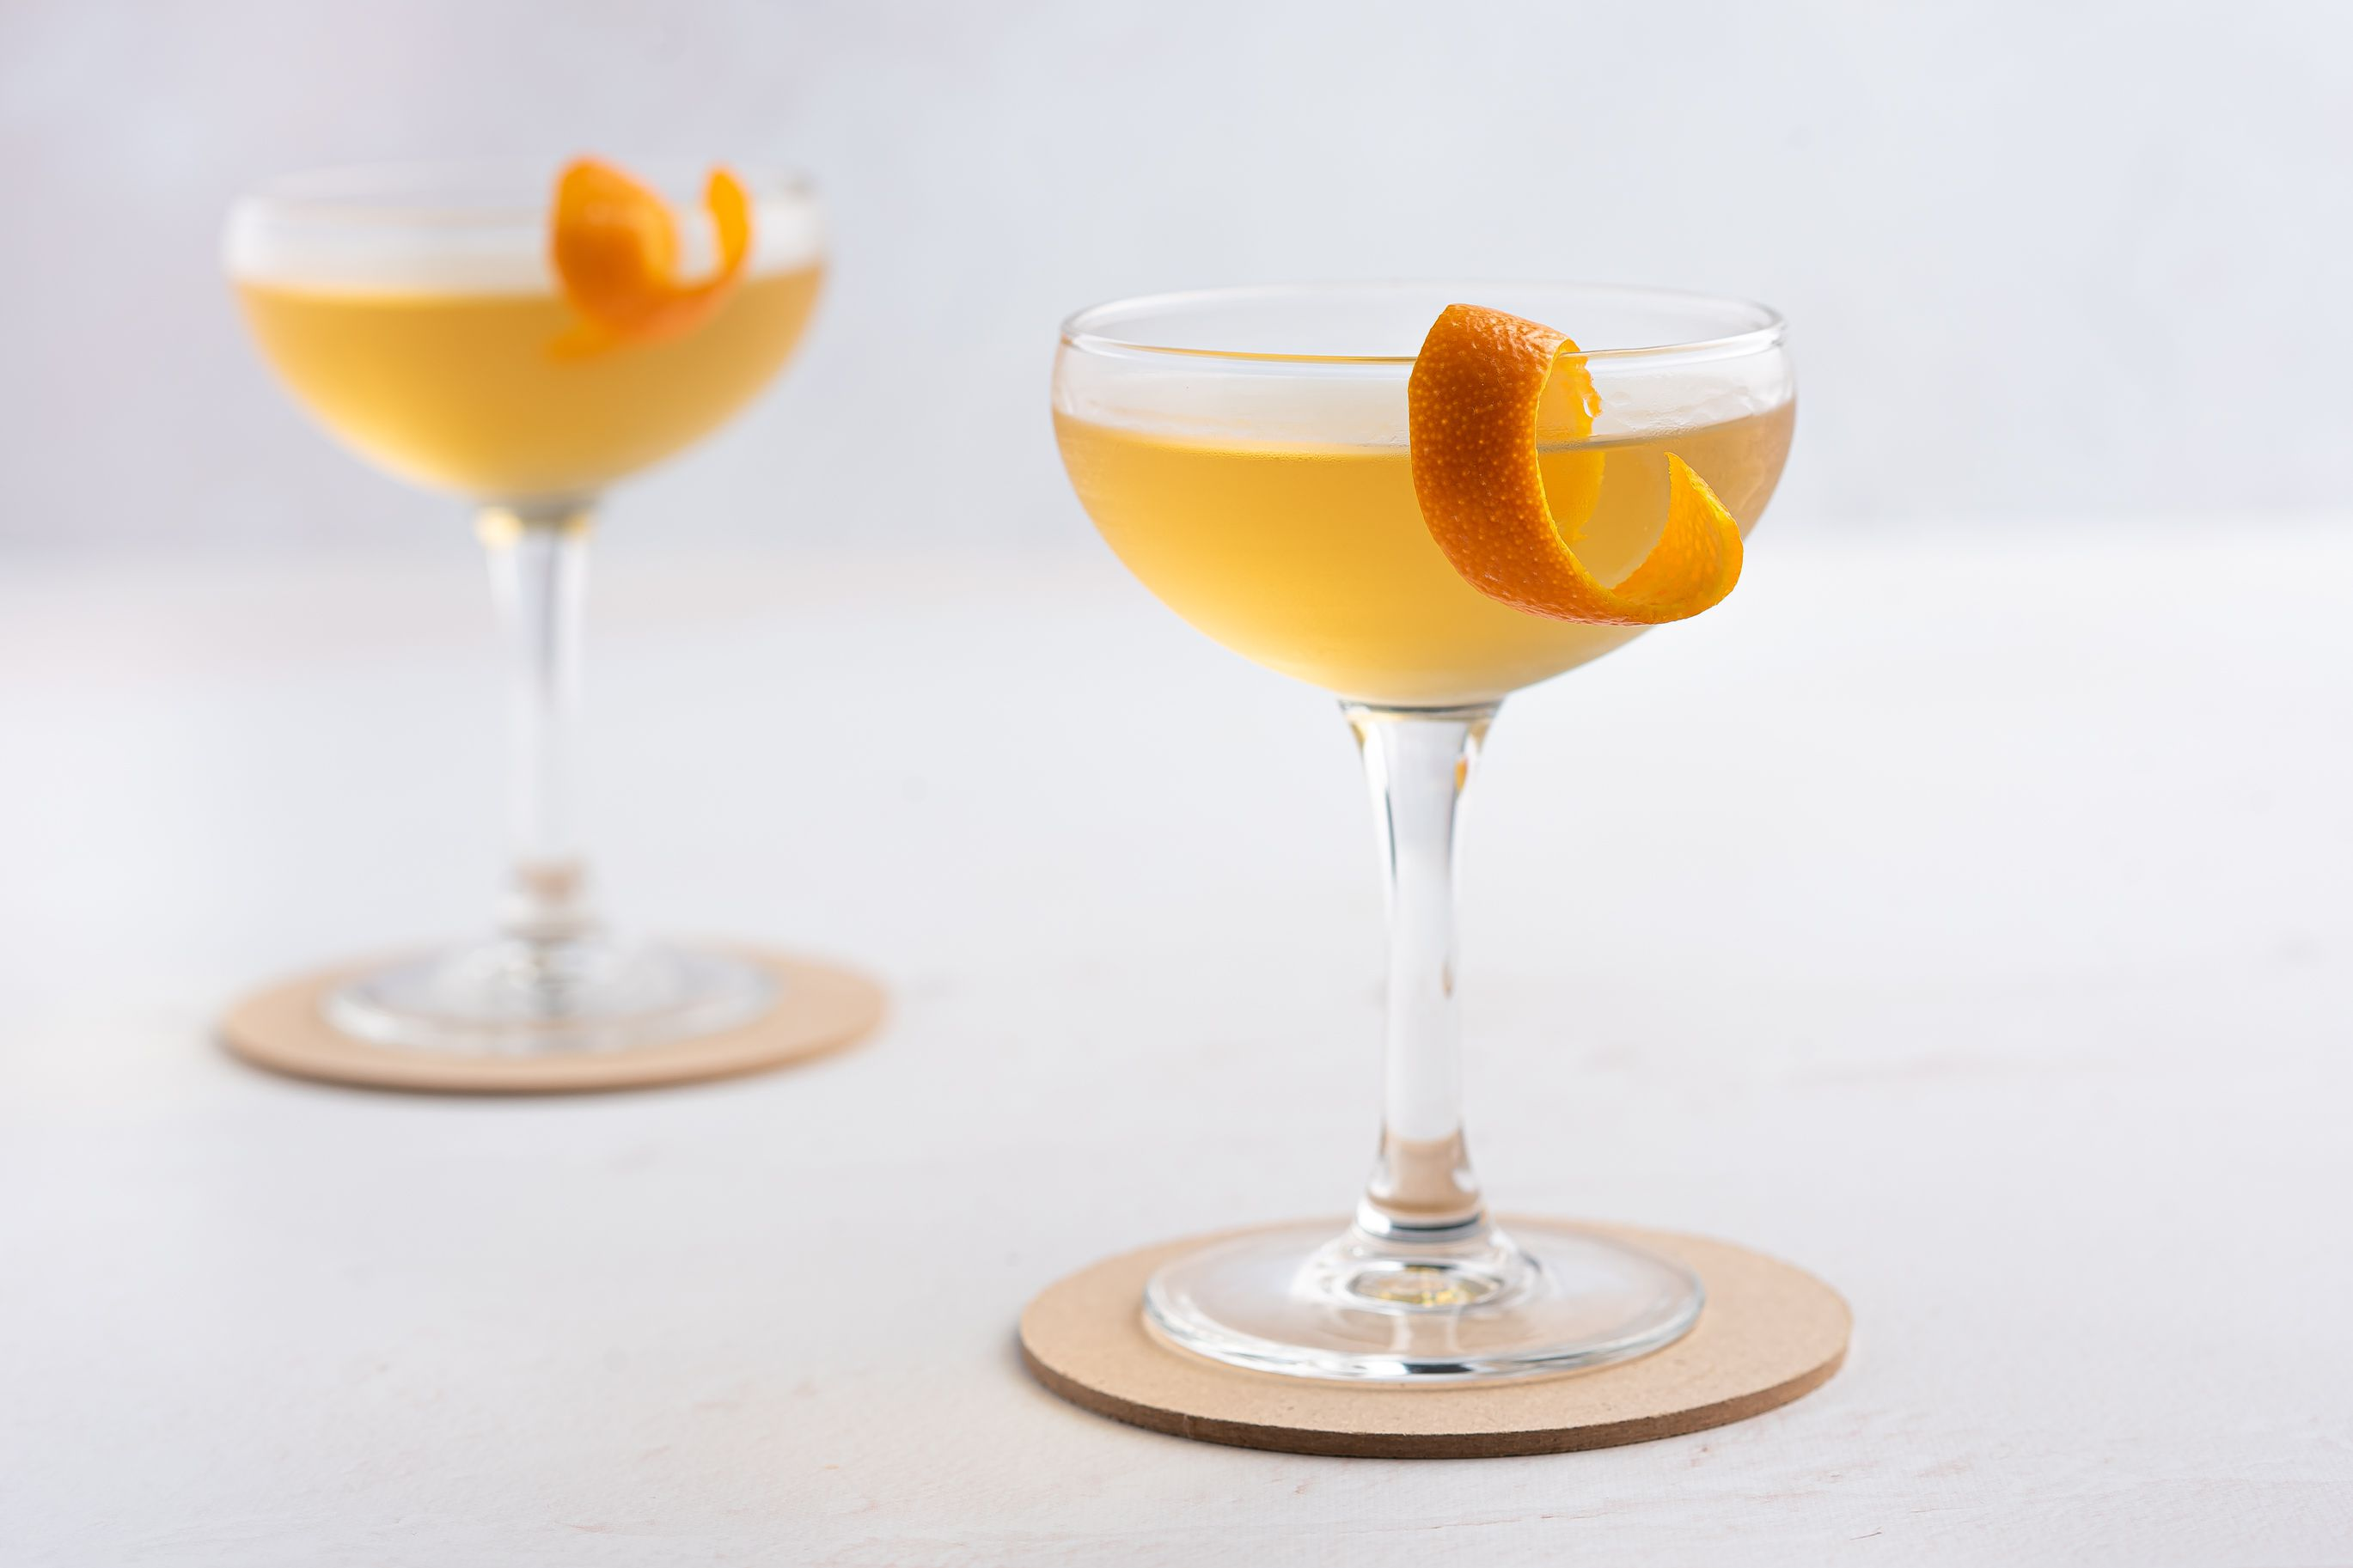 Fancy Whiskey Cocktails in a glasses